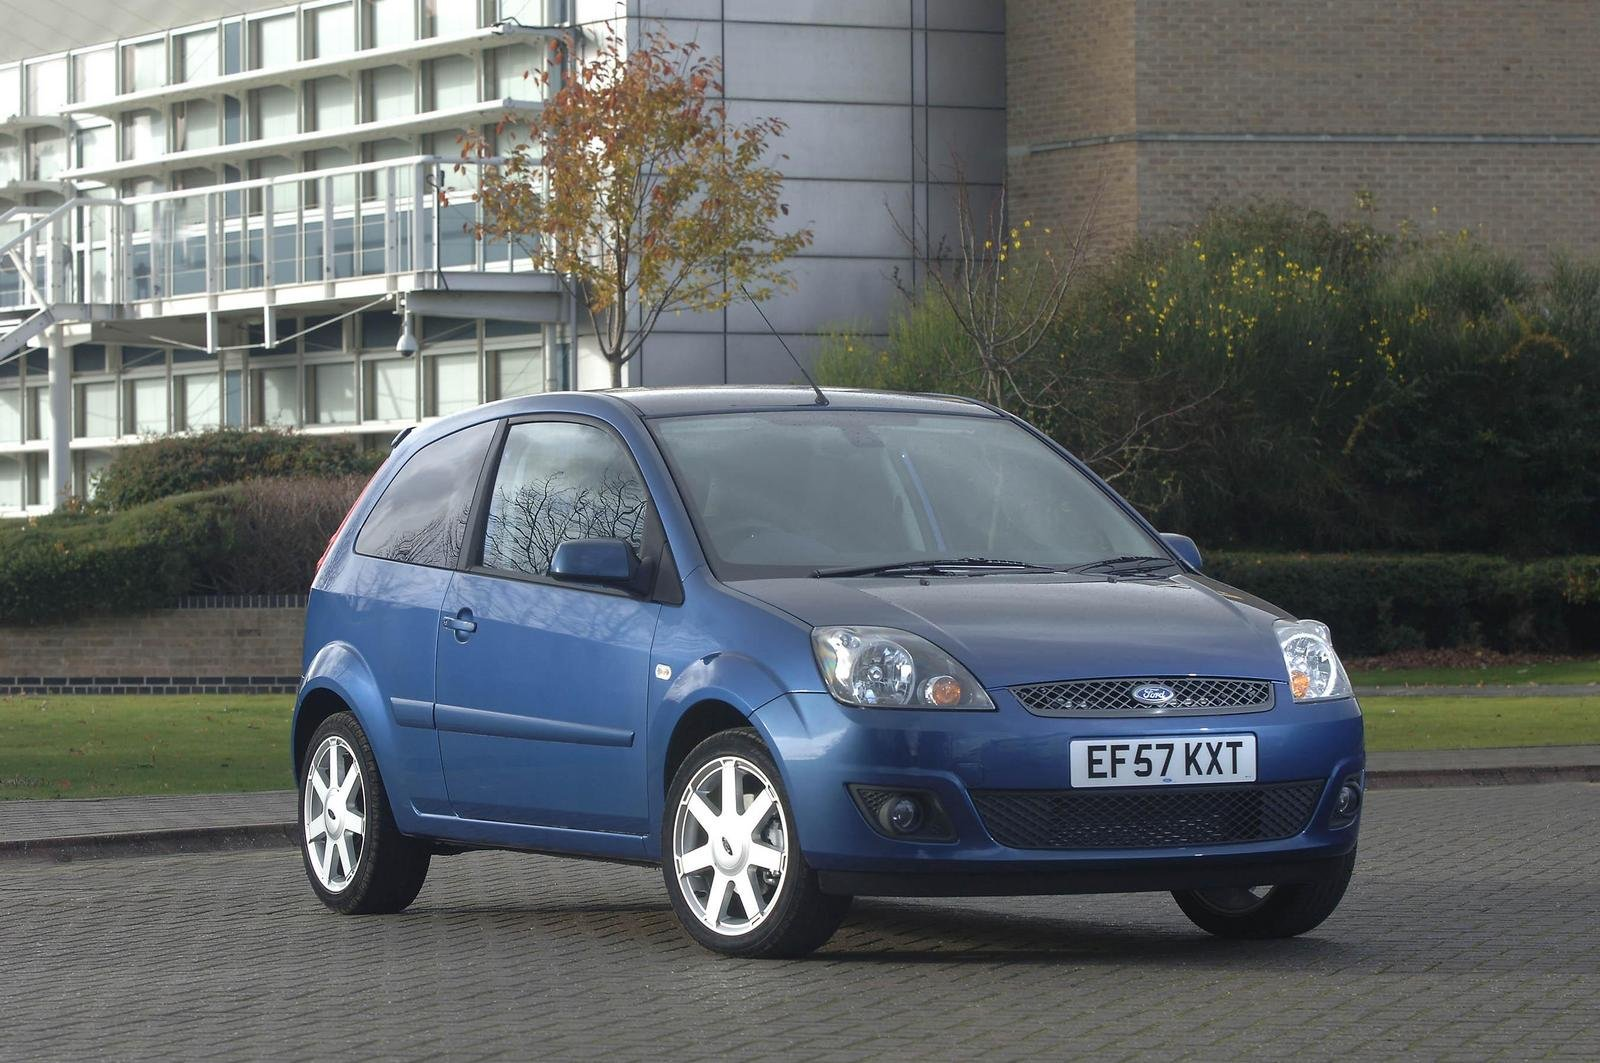 2008 Ford Fiesta Zetec 2007 Ford Fiesta Zetec Blue Review Gallery Top Speed